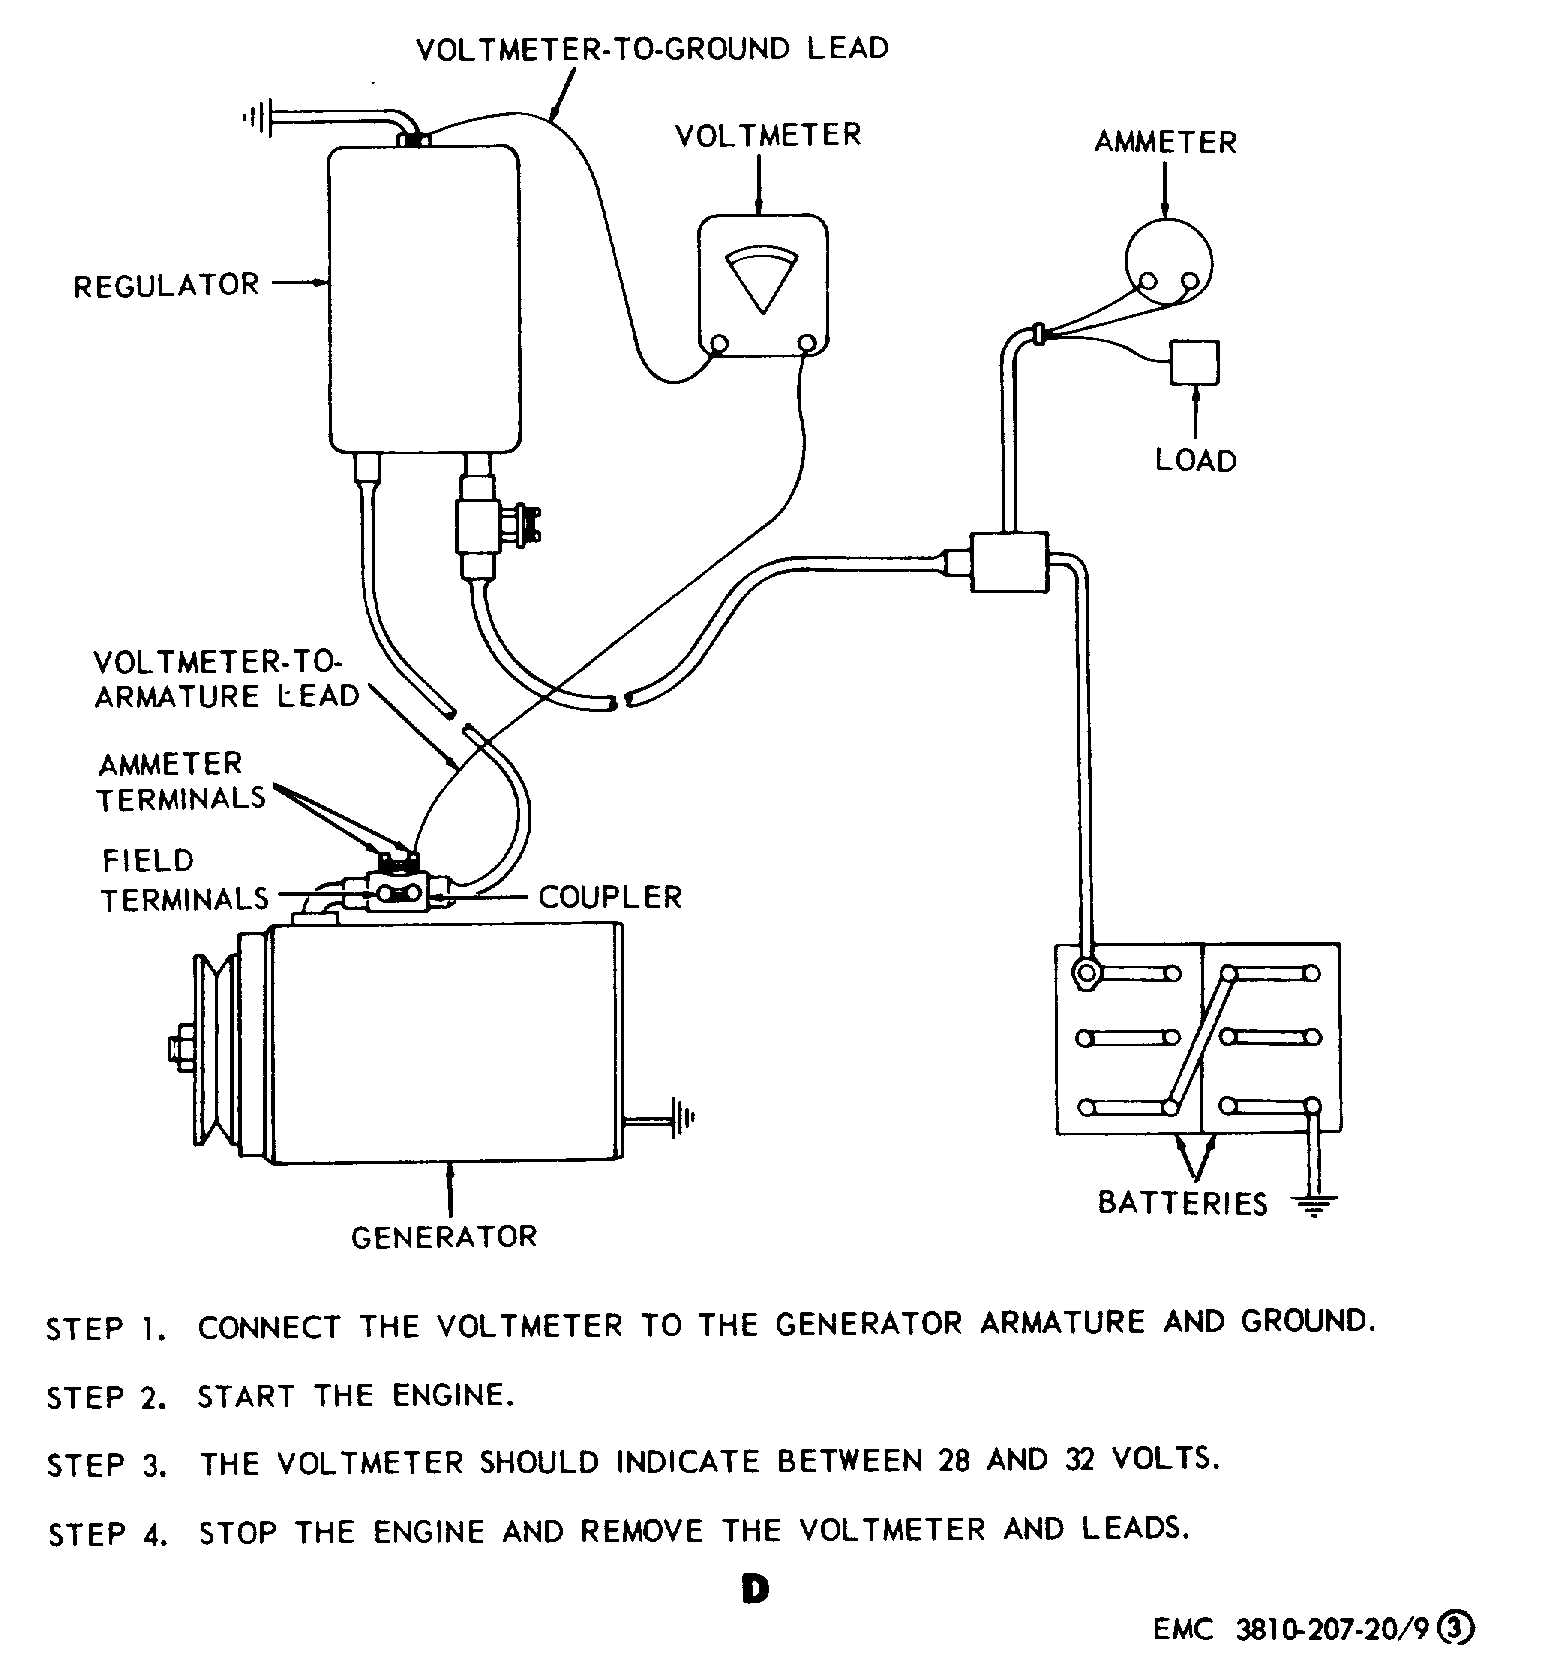 international farmall m wiring diagram #16 on Electrical Wiring Diagram for Farmall 350 for international farmall m wiring diagram #16 at Diagrams of International M Tractor Motor